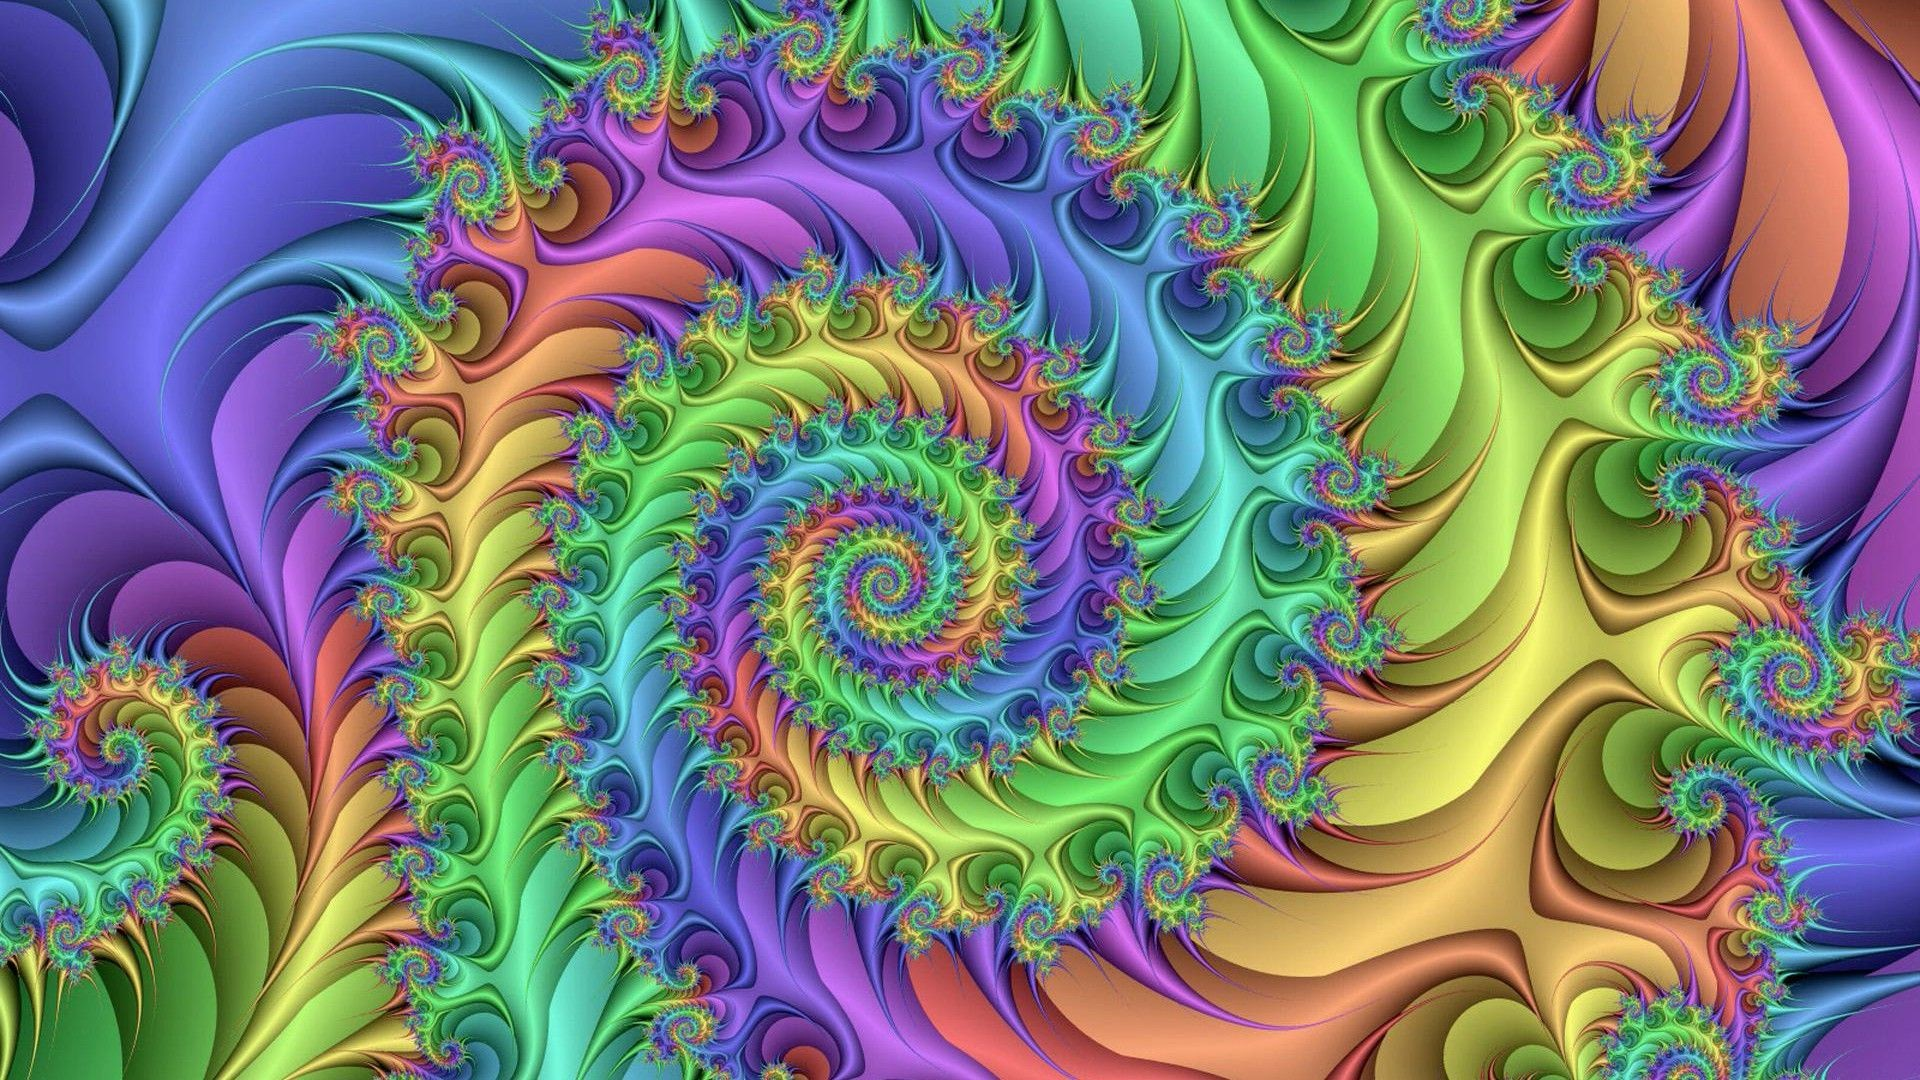 … trippy hd wallpapers wallpapersafari …